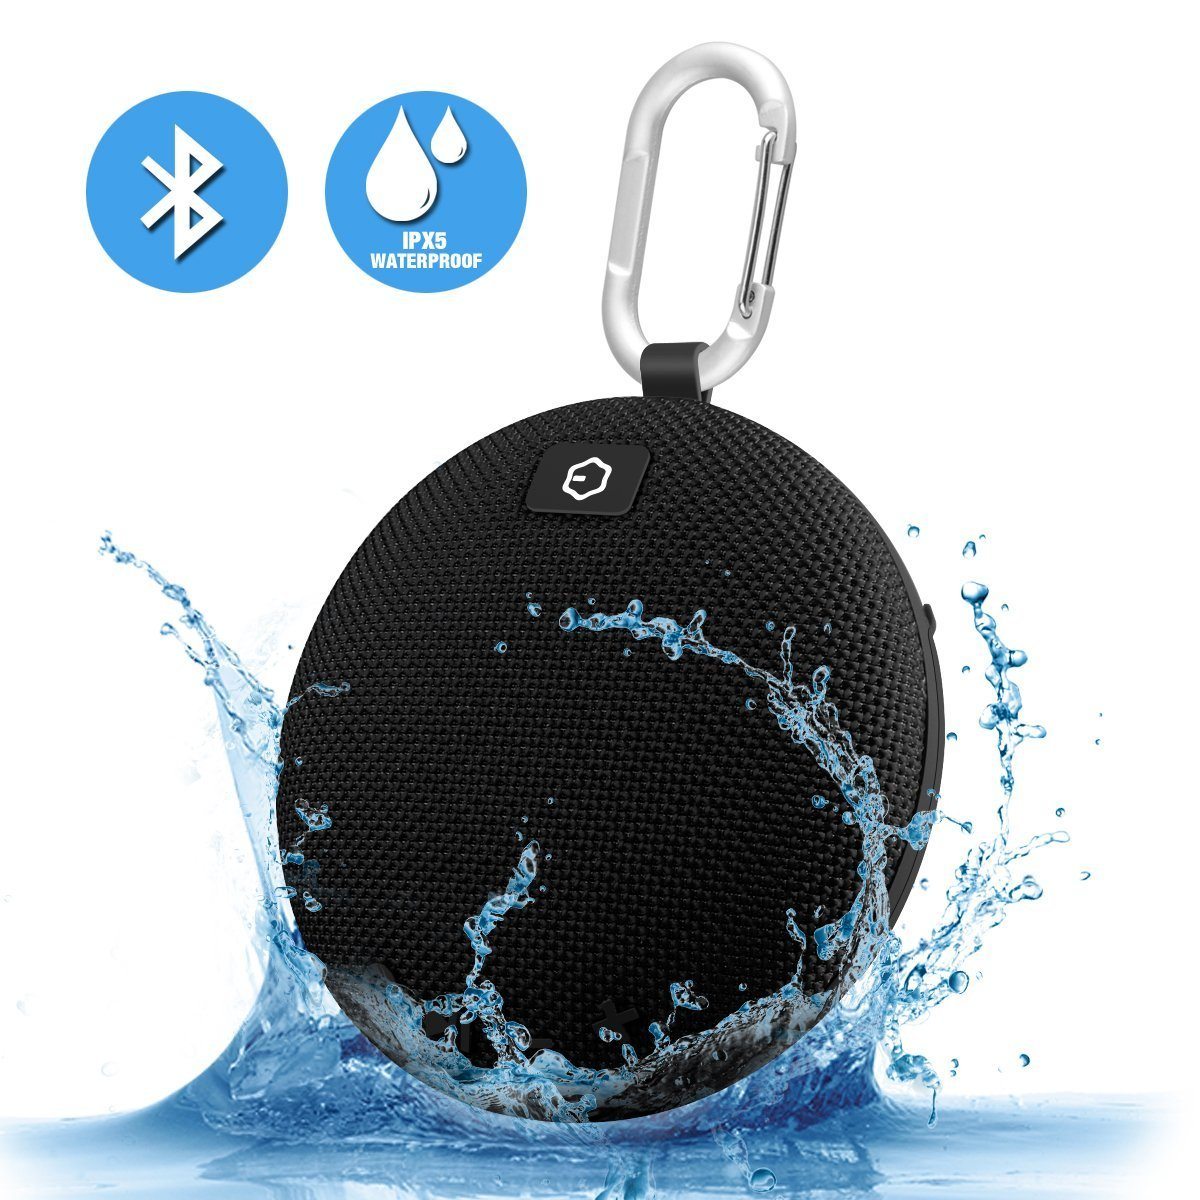 Bluetooth Speakers, OZZIE X5 Outdoor Portable Stereo Speakers with HD Audio and Enhanced Bass, Built-In Dual Driver Speakerphone, Bluetooth 4.0, Handsfree Calling and TF Card Slot